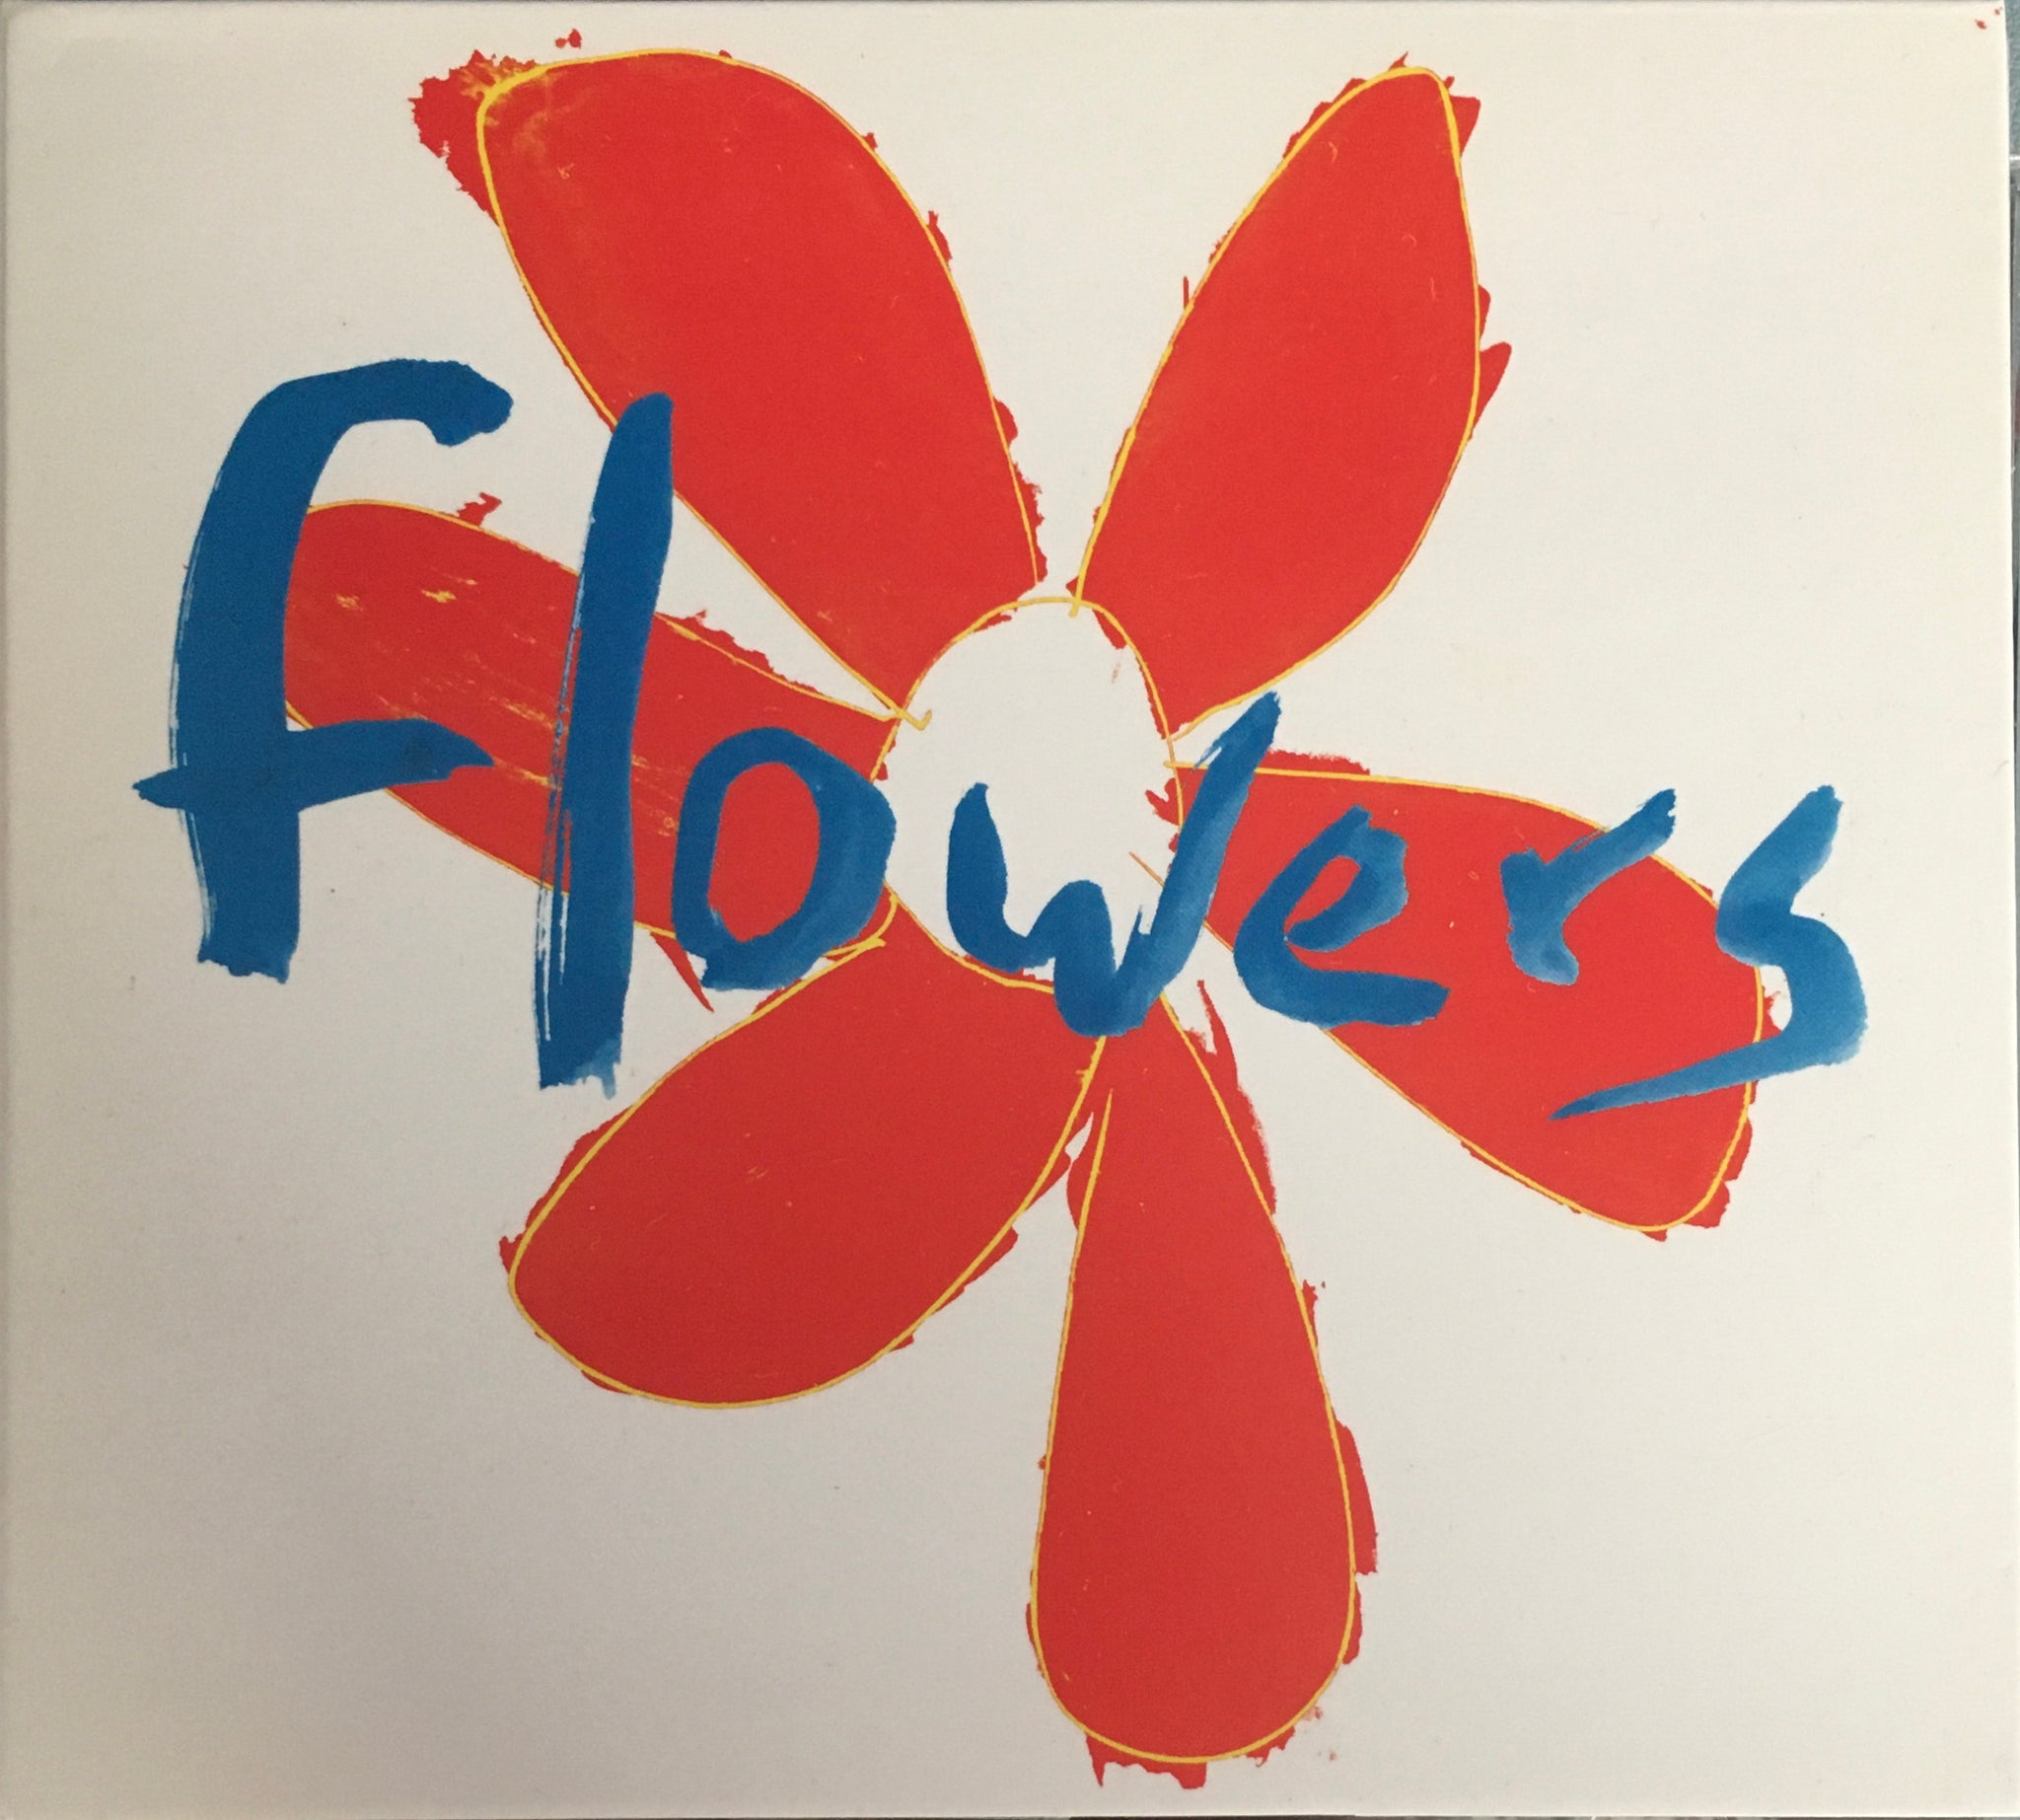 "Flowers ""Do What You Want To, It's What You Should Do"" CD Digipak (2014)"